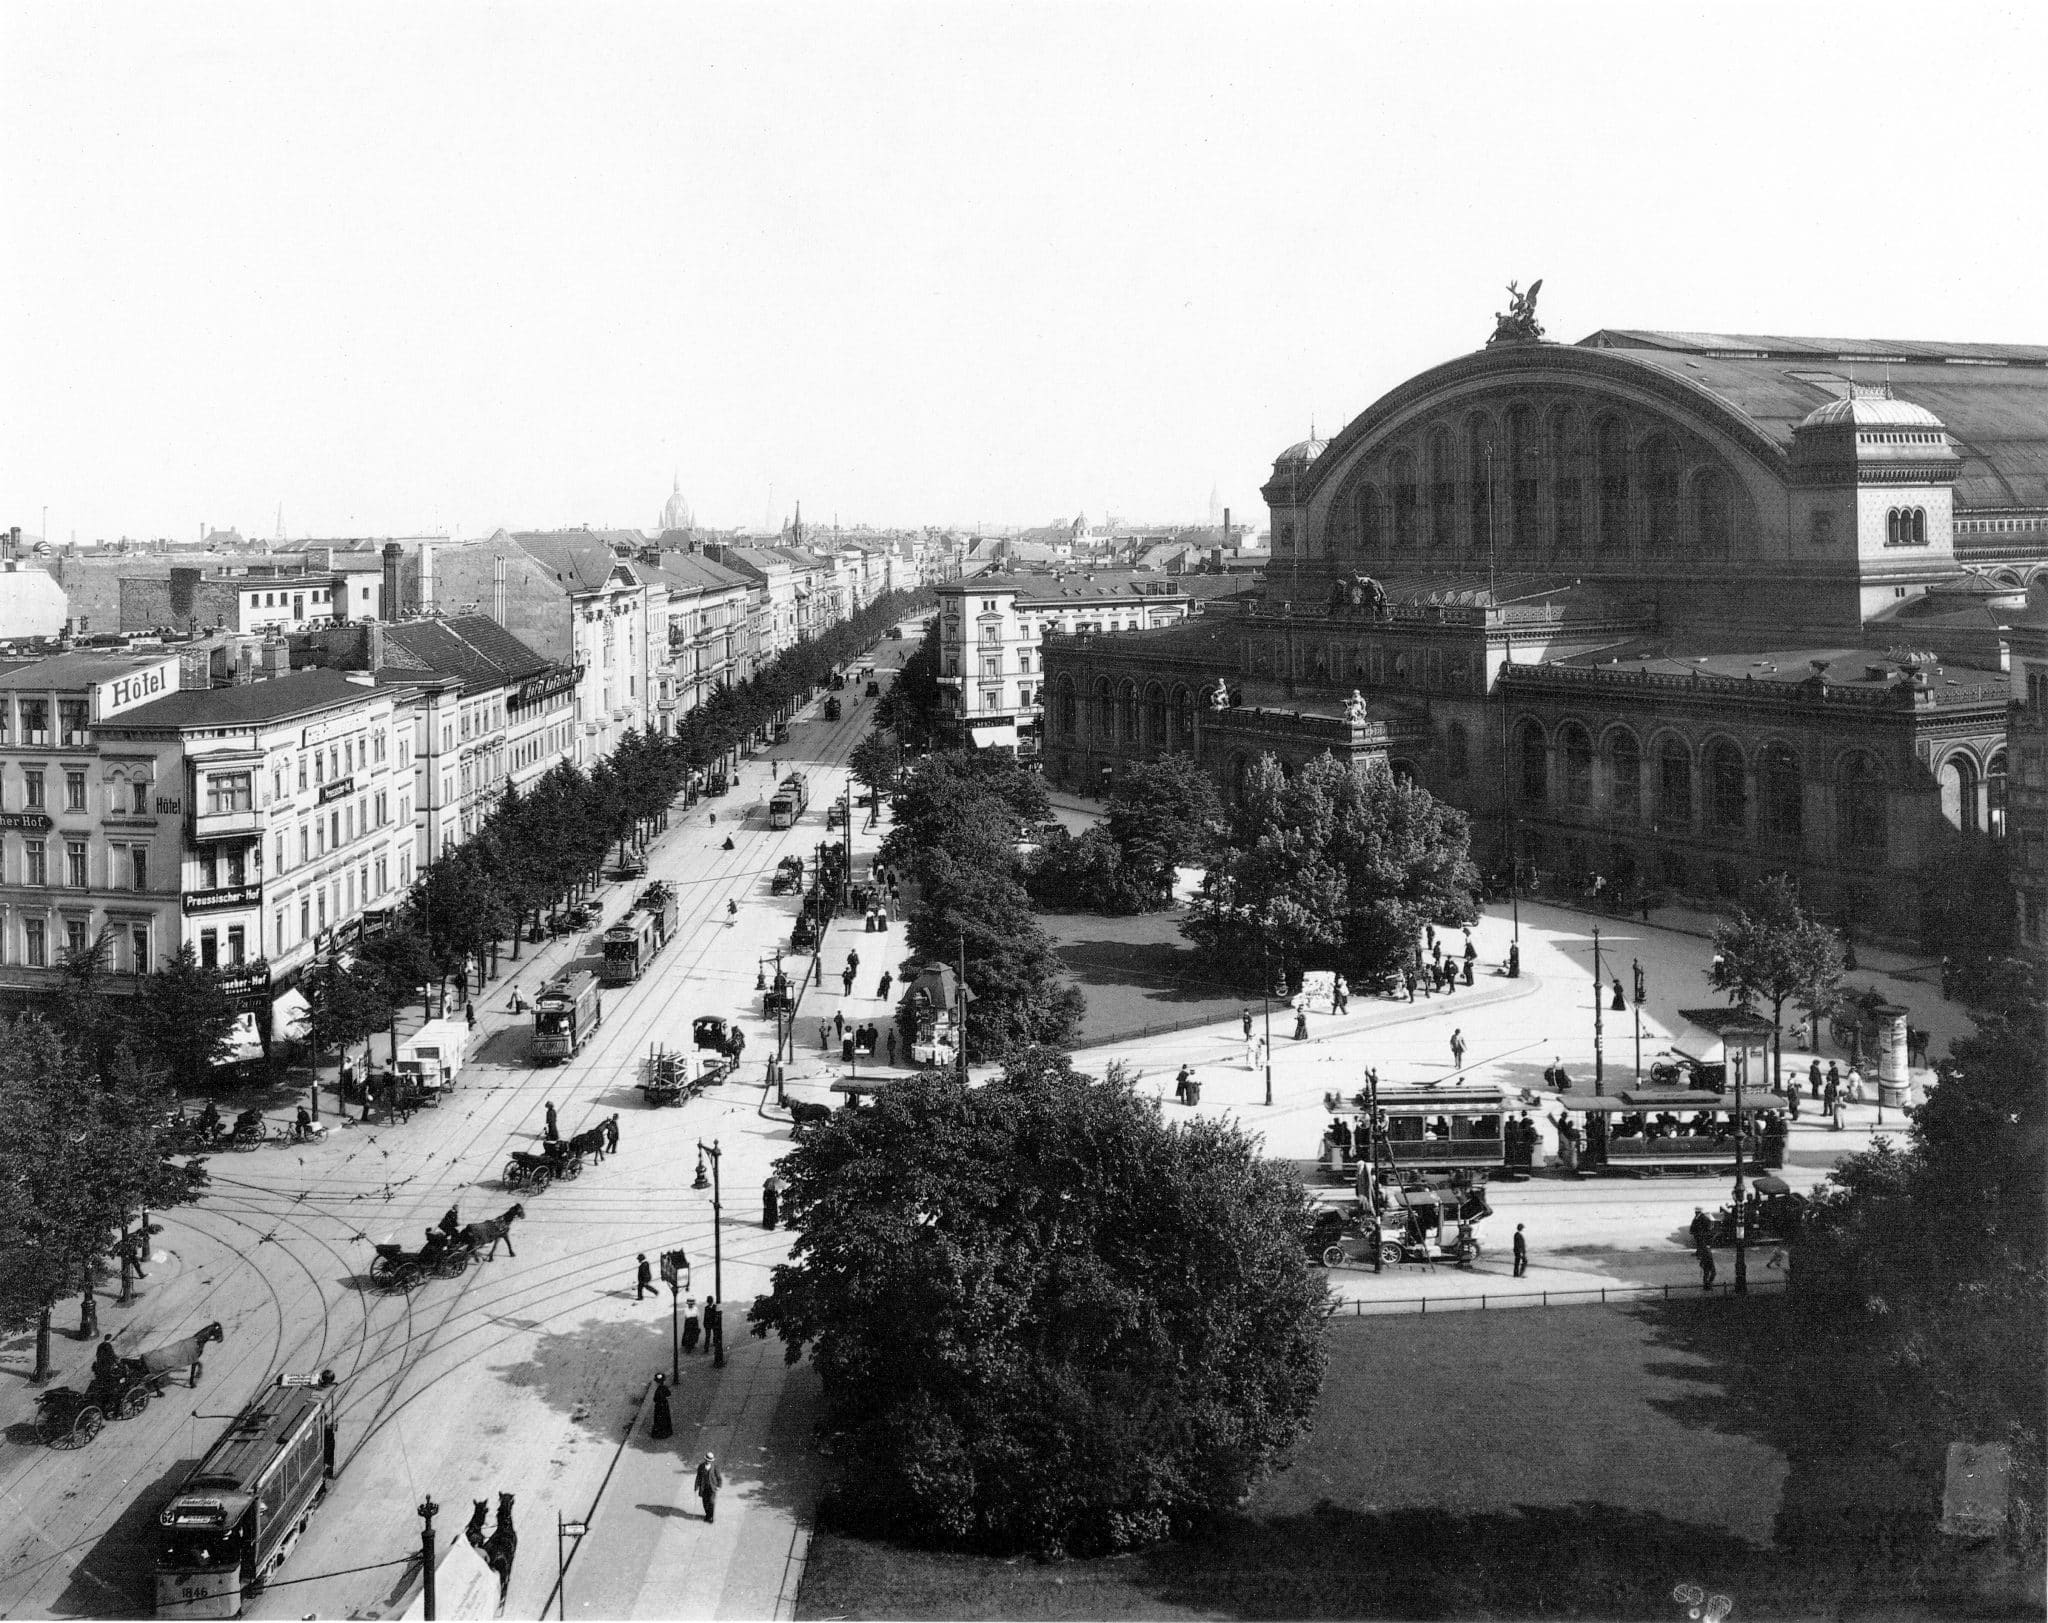 Berlin's Anhalter Bahnhof - the largest train station in Europe in the early 1900s